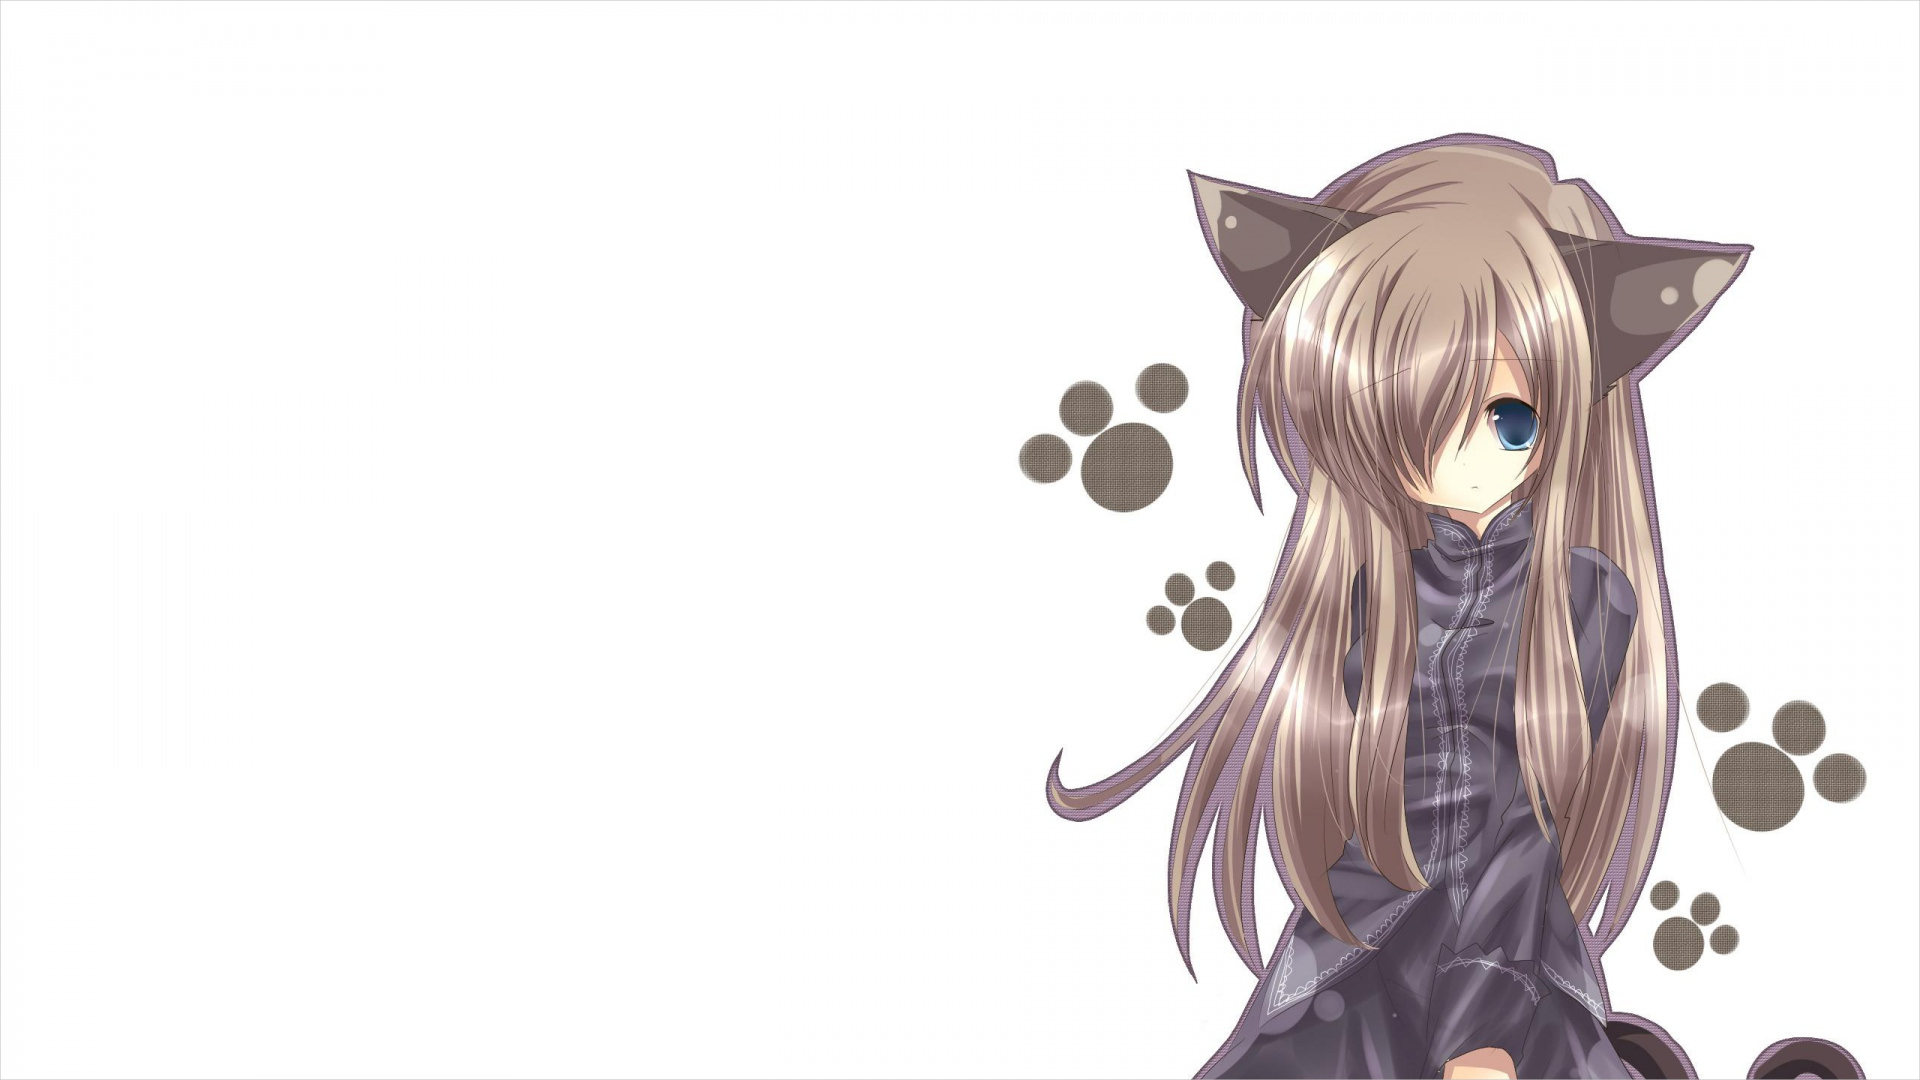 cute cat girl wallpaper background1